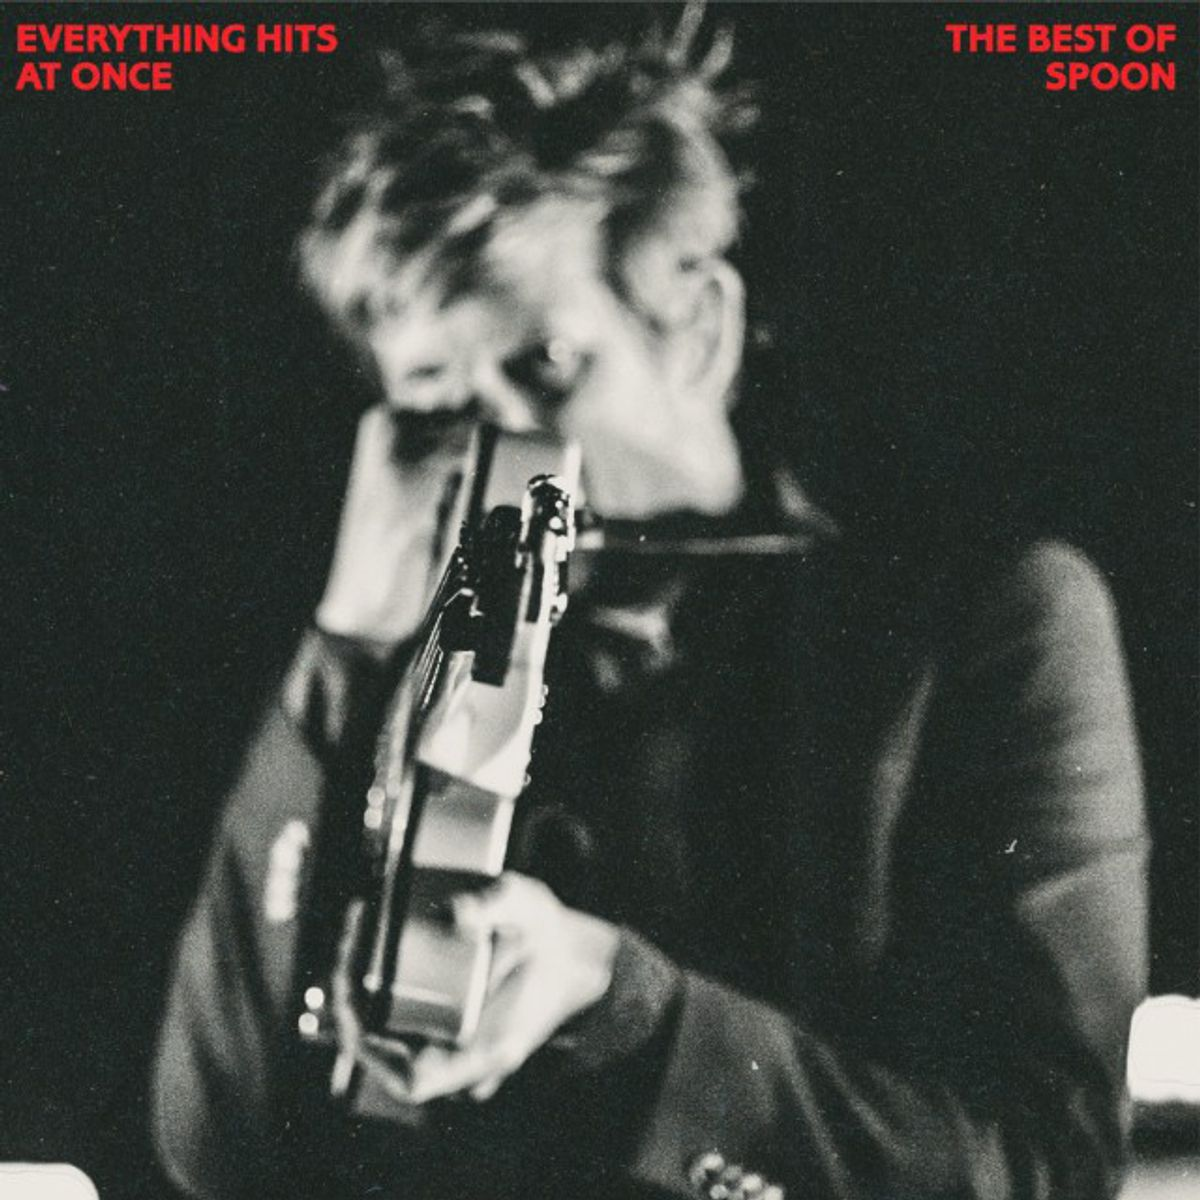 Spoon - 'Everything Hits At Once'